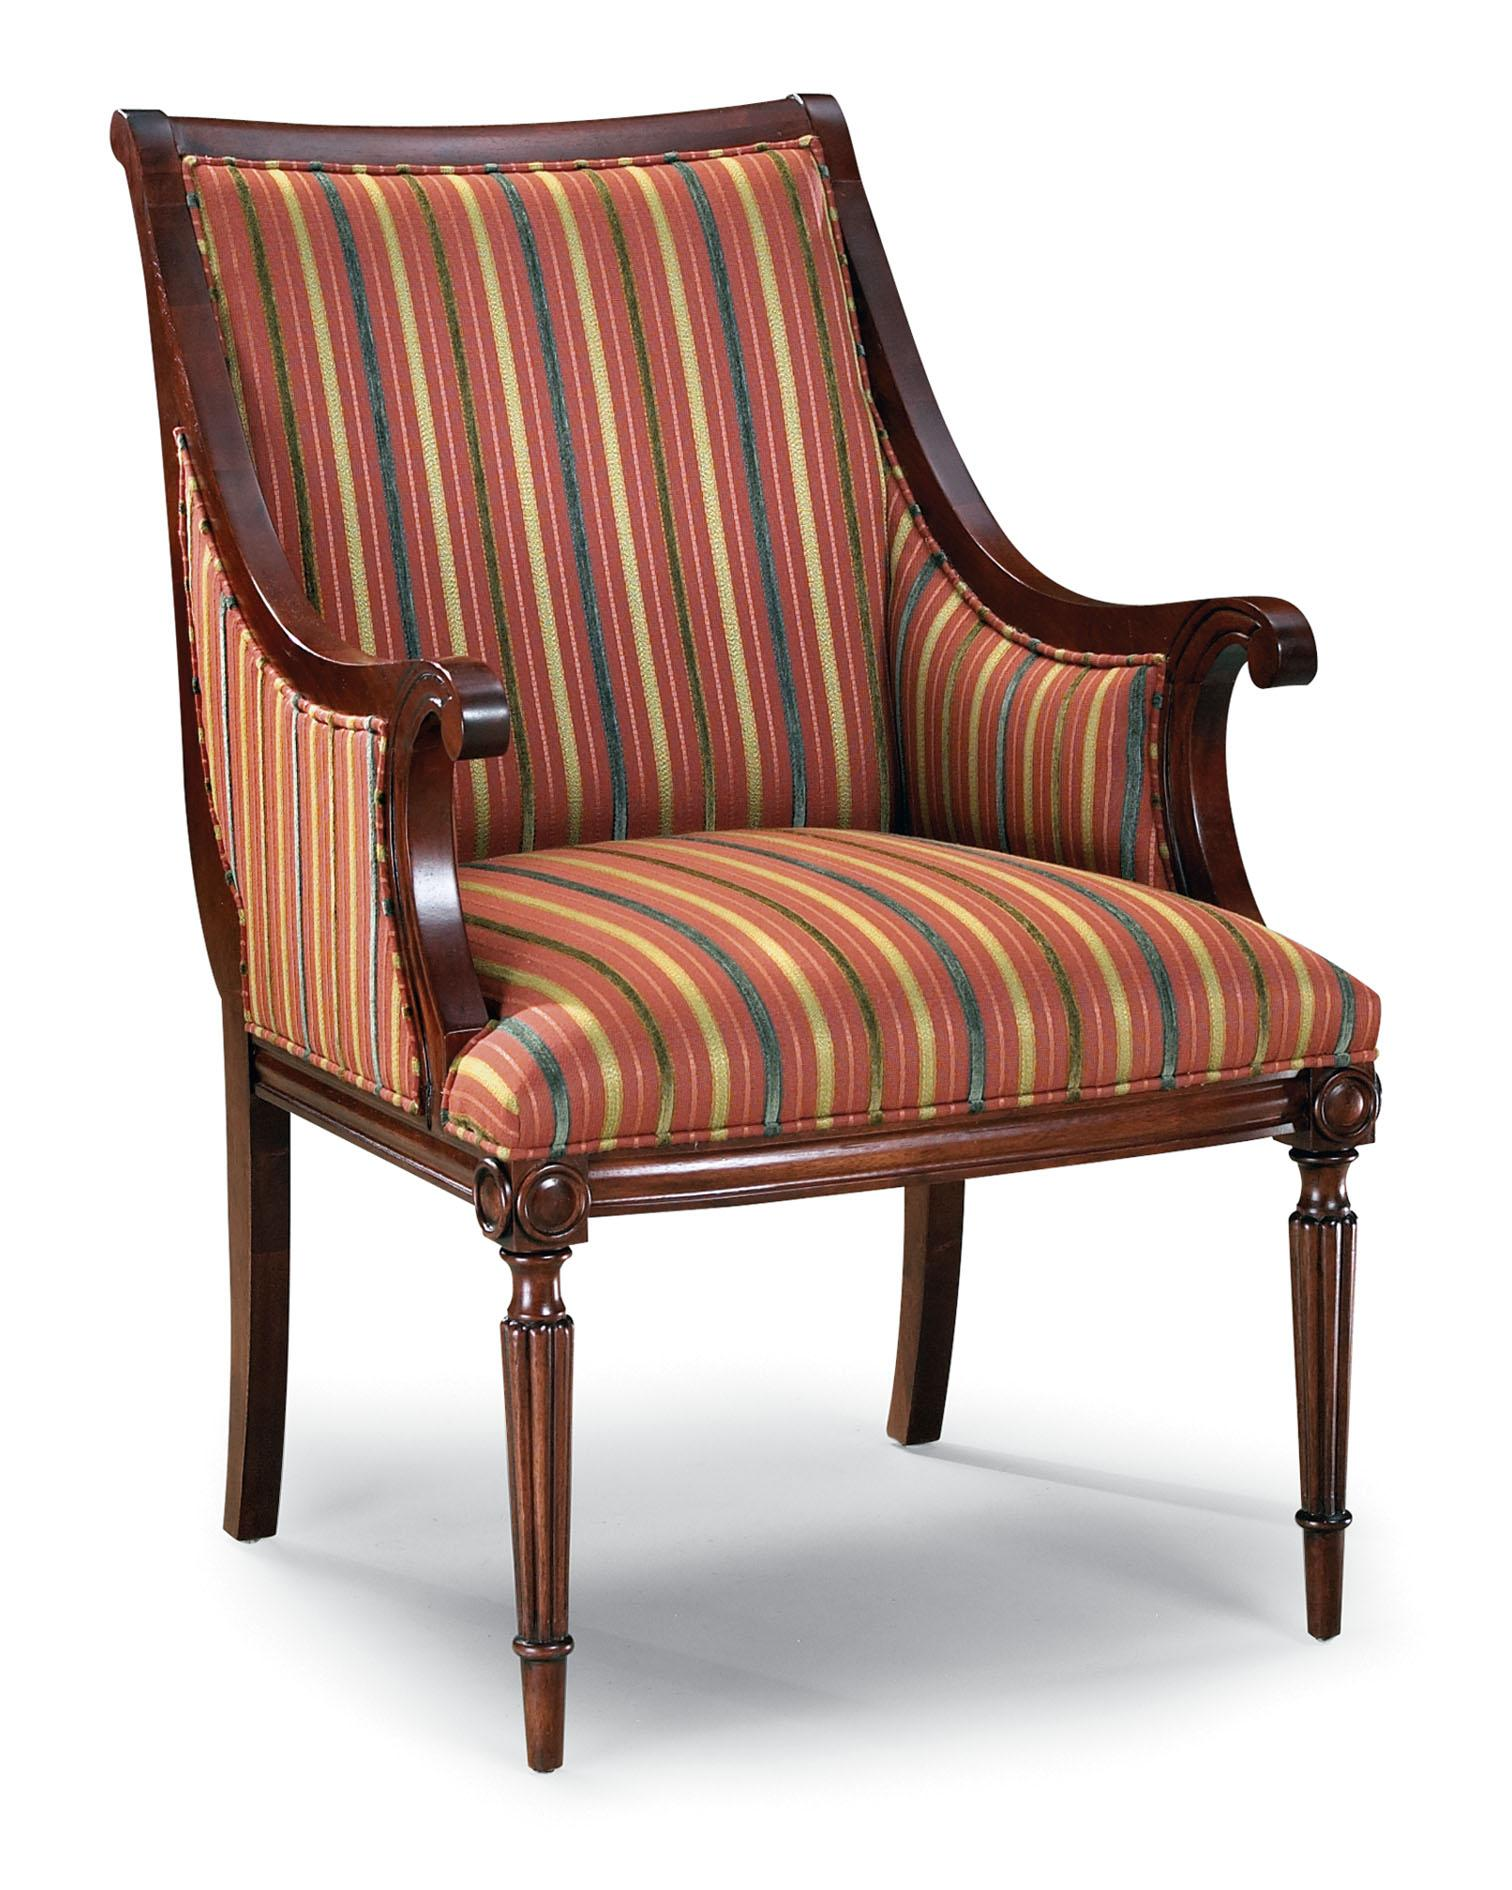 Wood Accent Chair Fairfield Chairs 5405 01 Exposed Wood Upholstered Accent